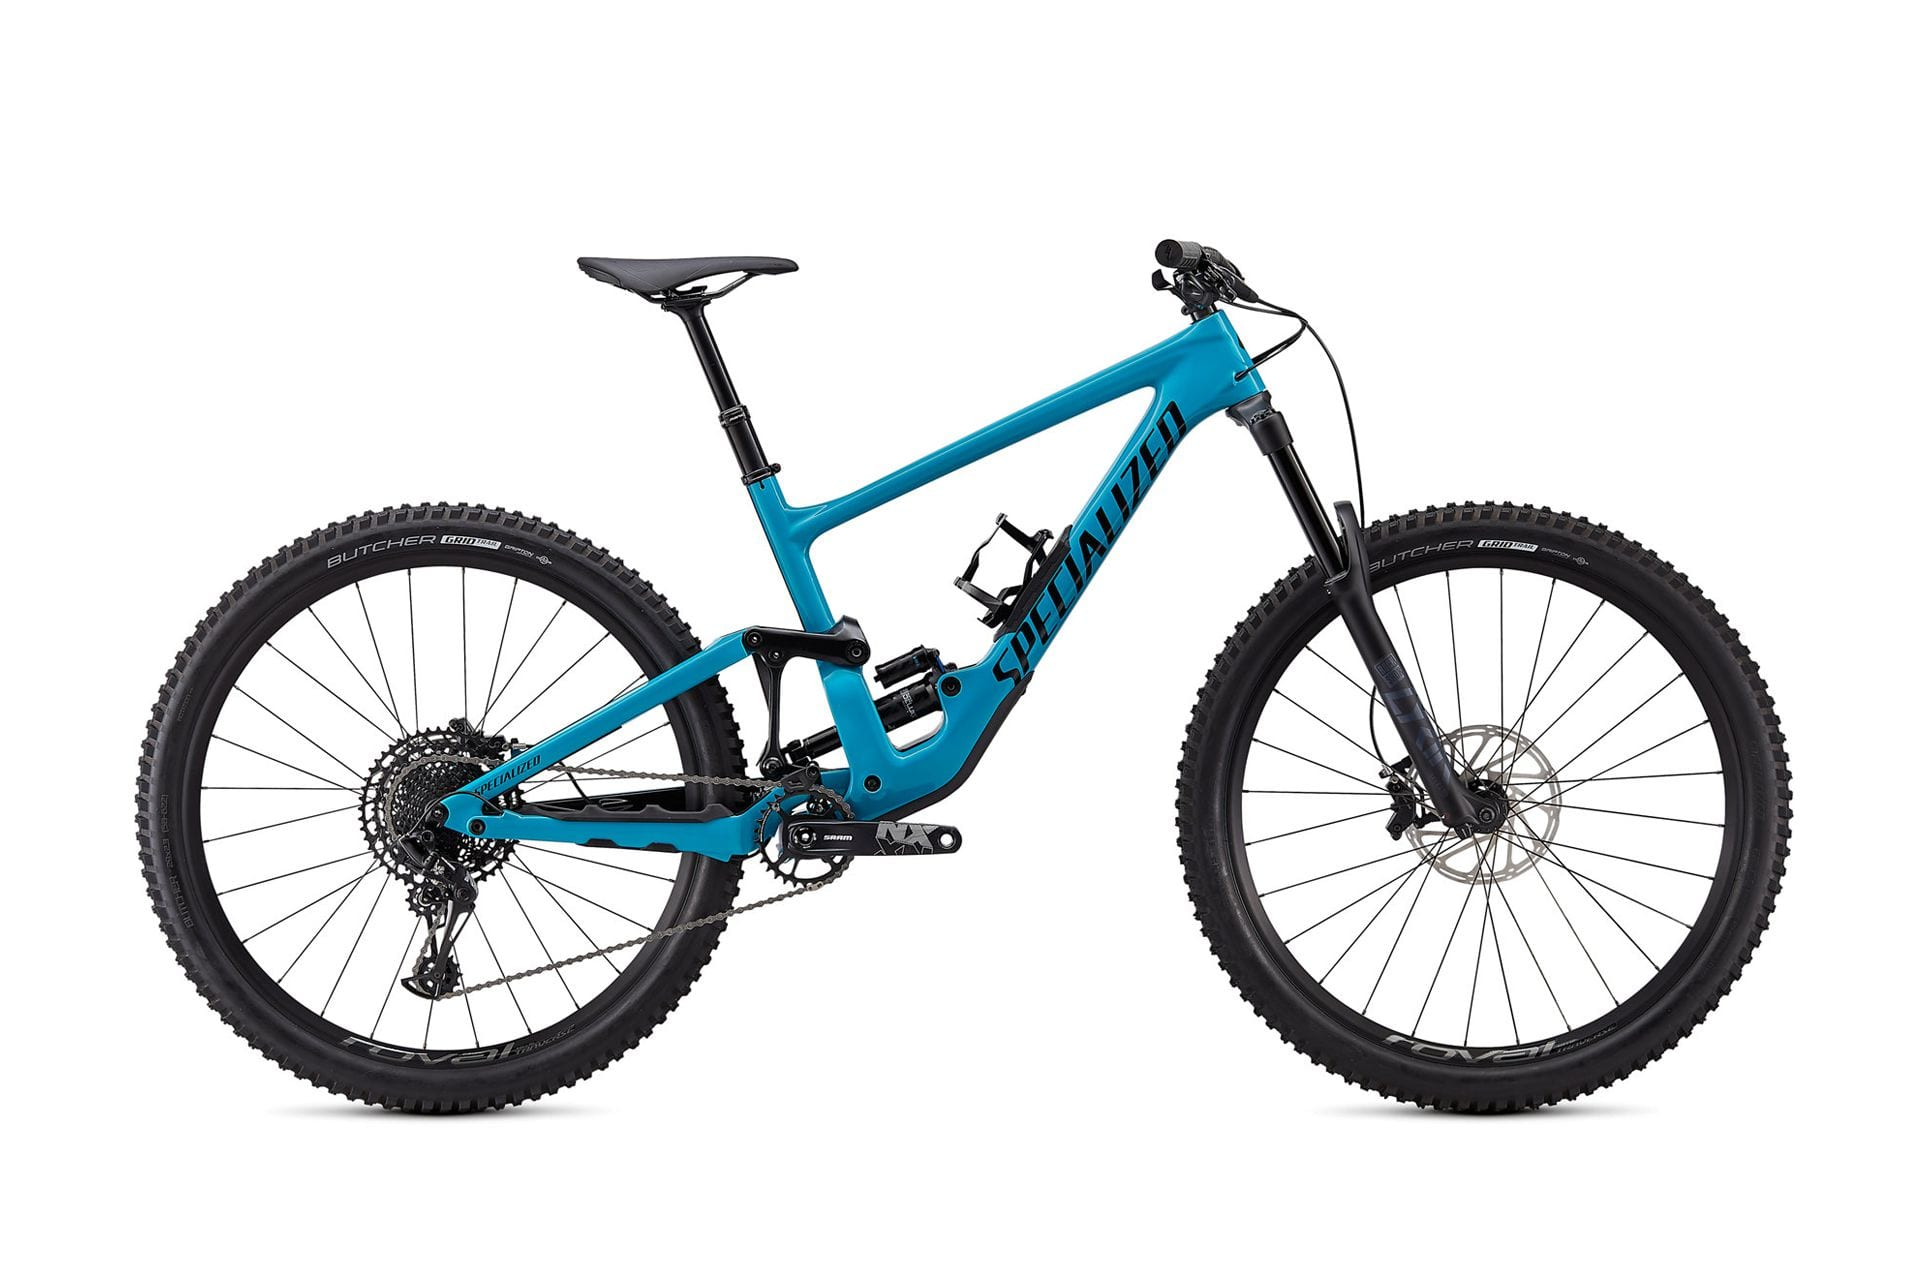 Specialized Enduro carbon rental in Whistler BC